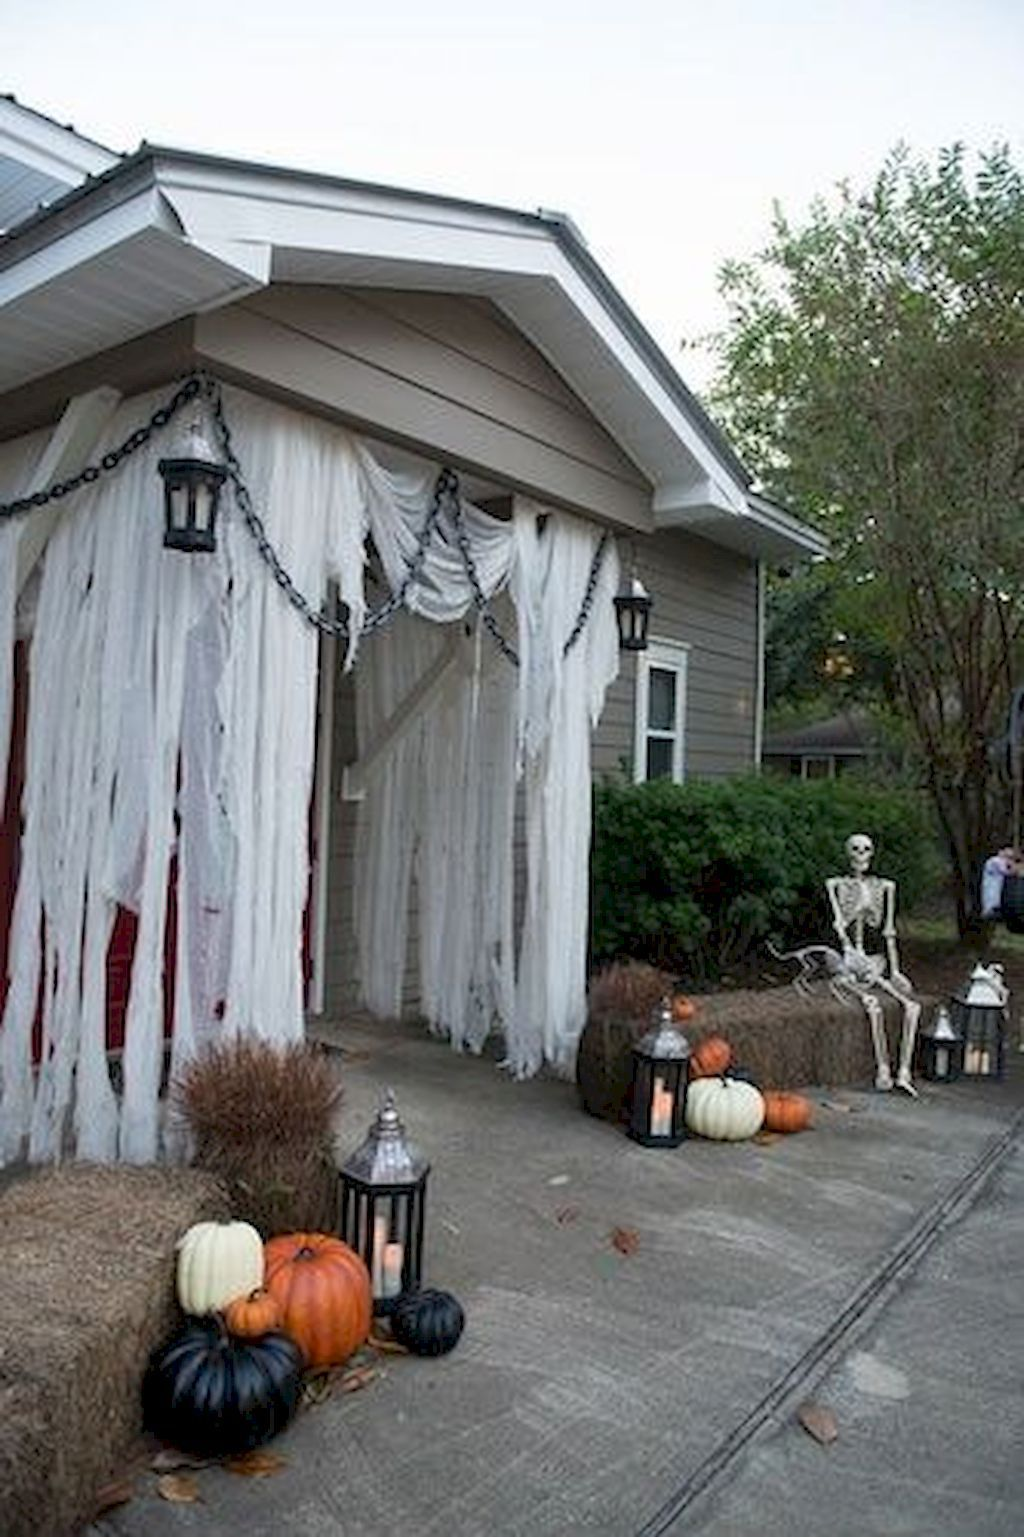 80 + CREEPY OUTDOOR HALLOWEEN DECORATION IDEAS (49 halloween props